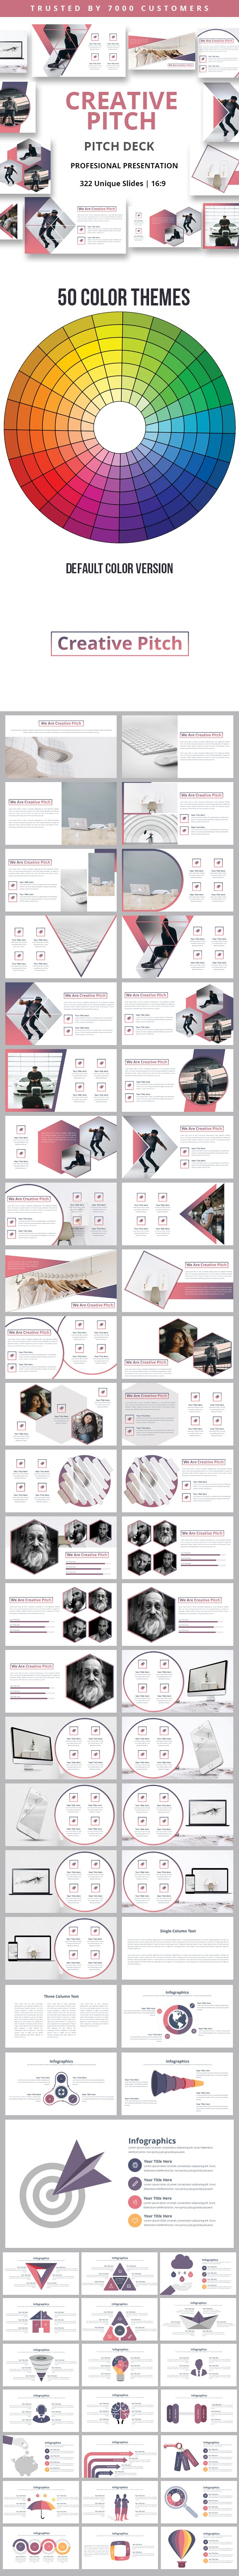 Creative Pitch Powerpoint Template - Business PowerPoint Templates